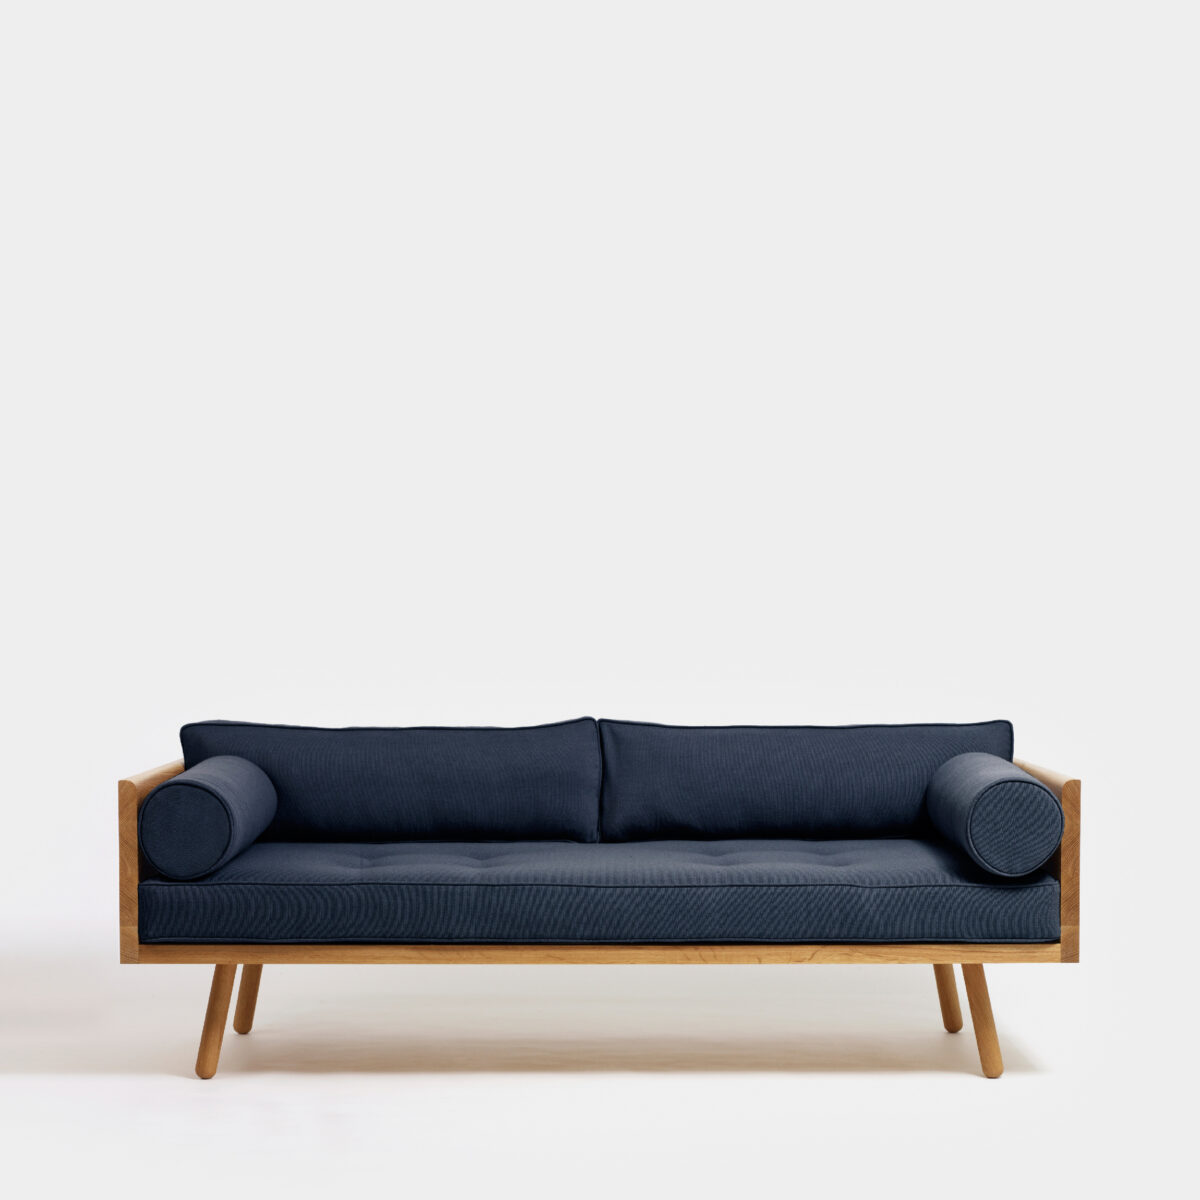 Another_Country_Sofa_One_Clyde_Indigo_001 copy